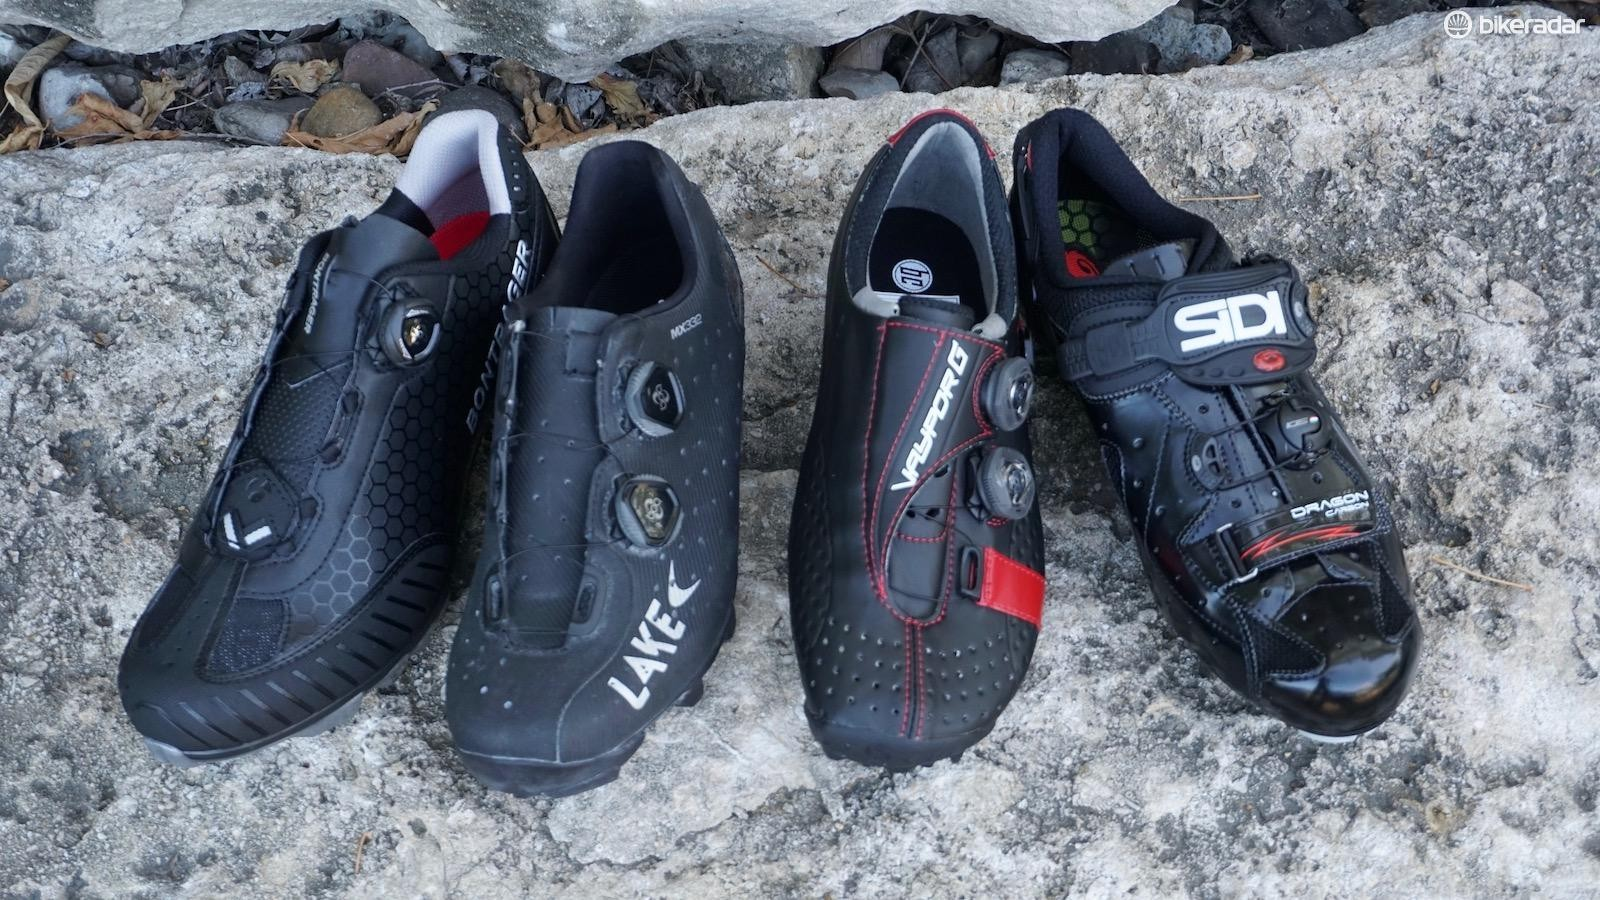 The Bontrager Foray and Sidi Dragon 4 are better for high-volume feet — Lake MX332 and Bont Vaypor G are better for a roomy forefoot